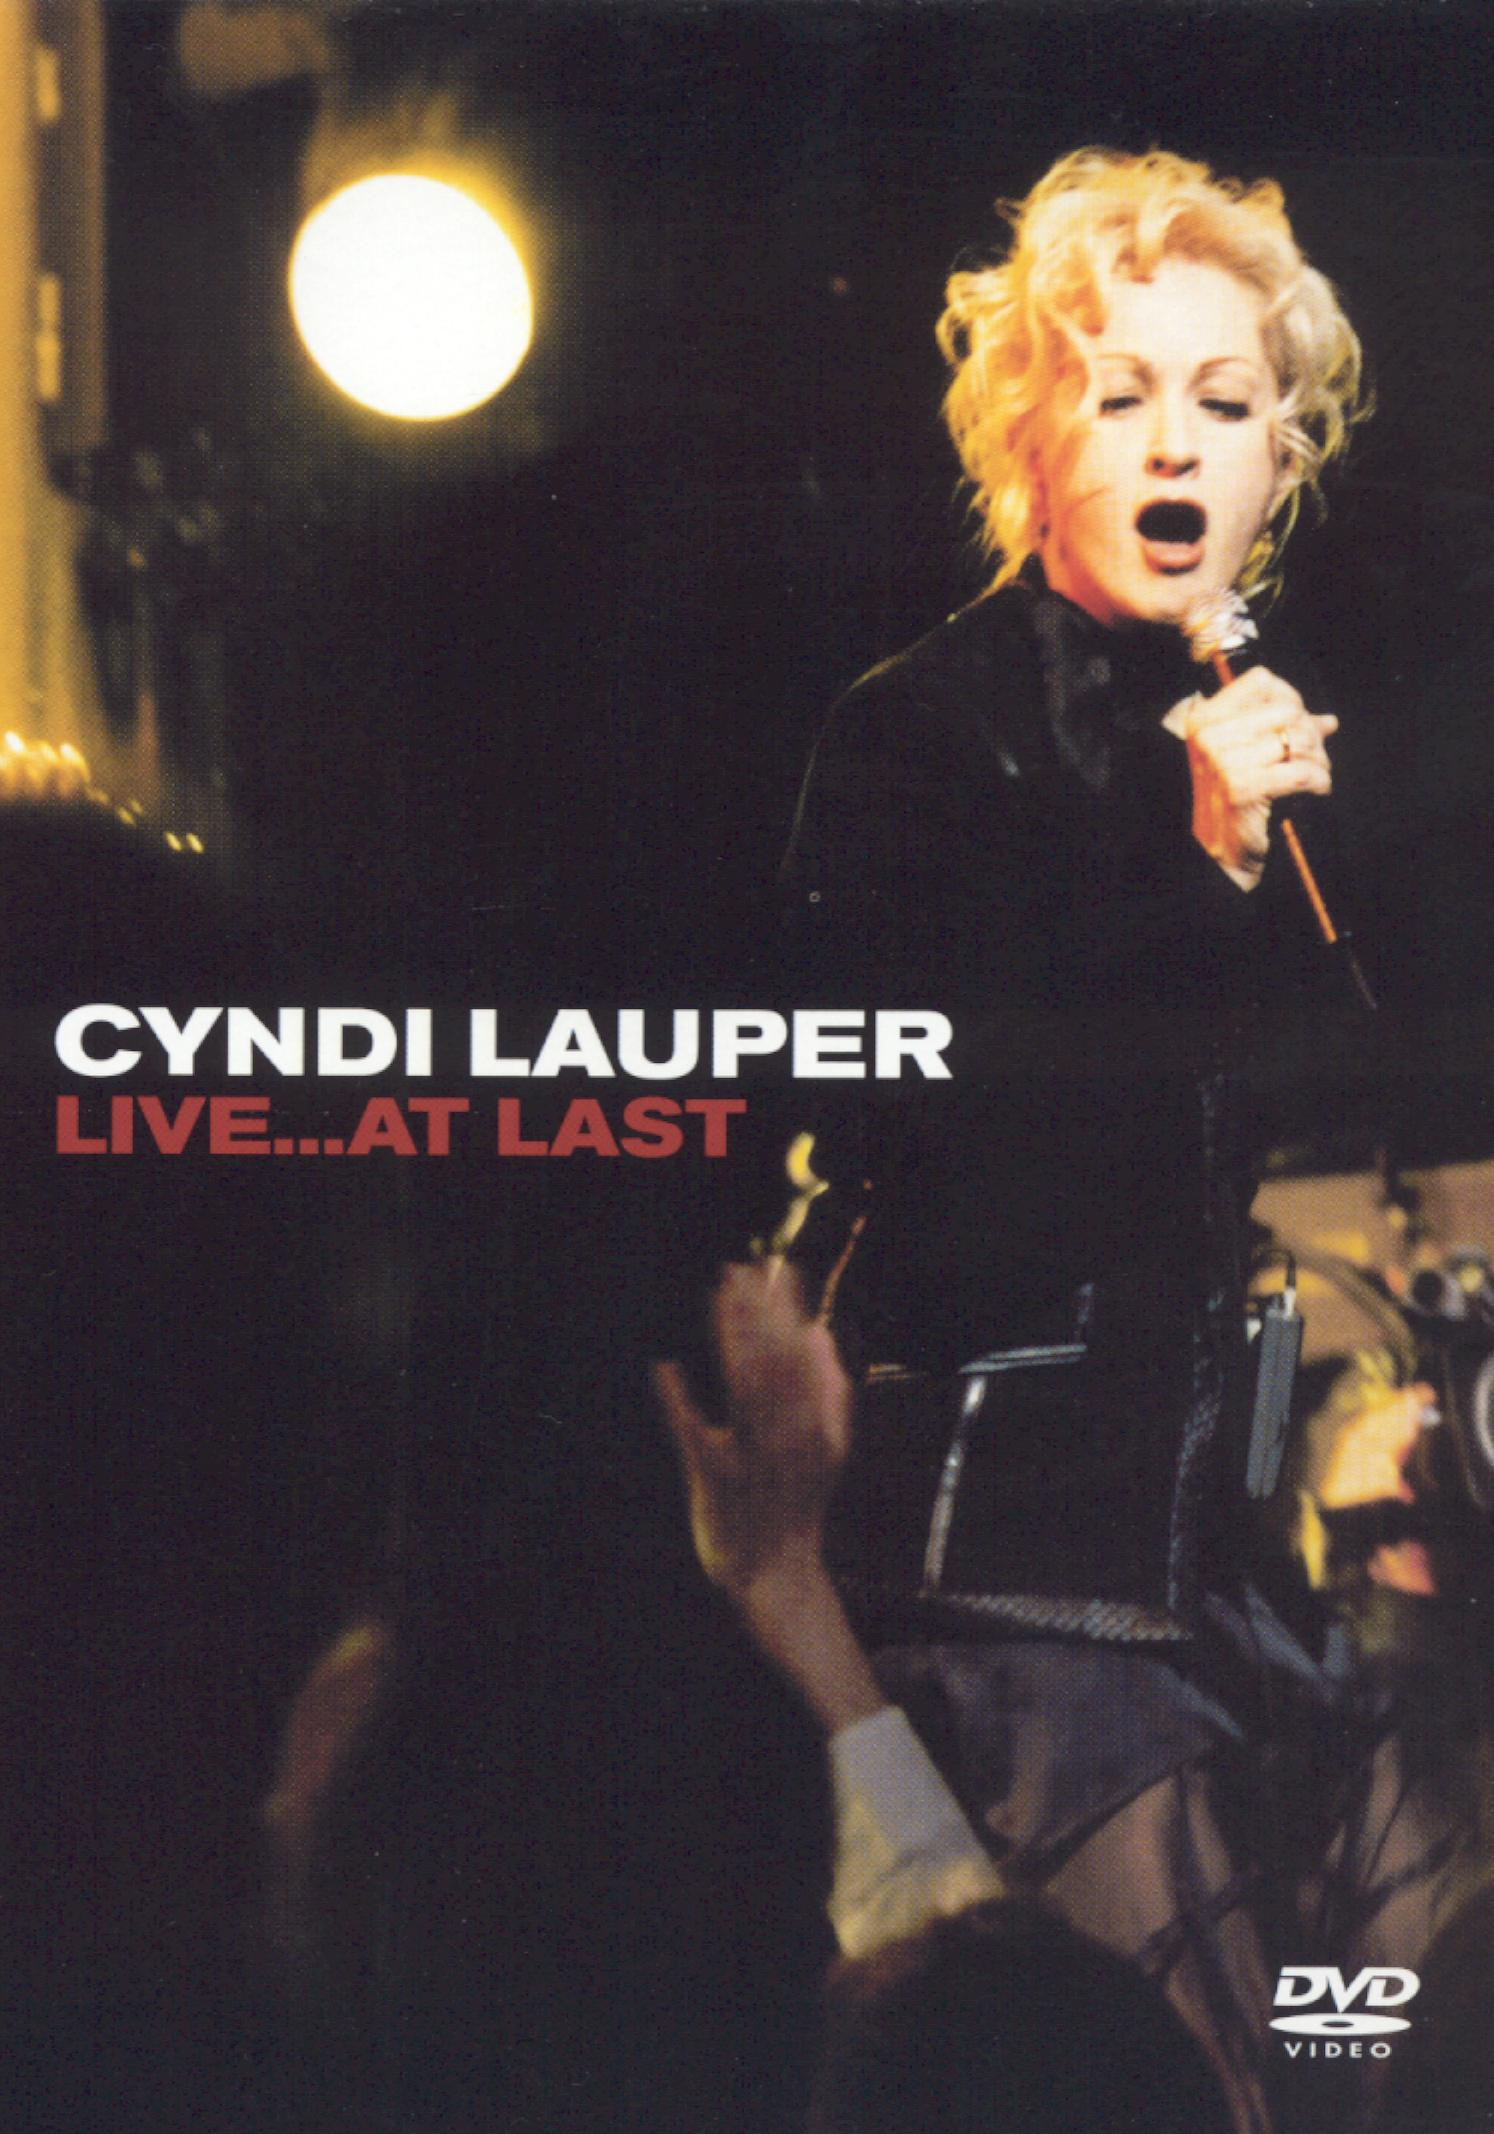 Cyndi Lauper: Live... At Last